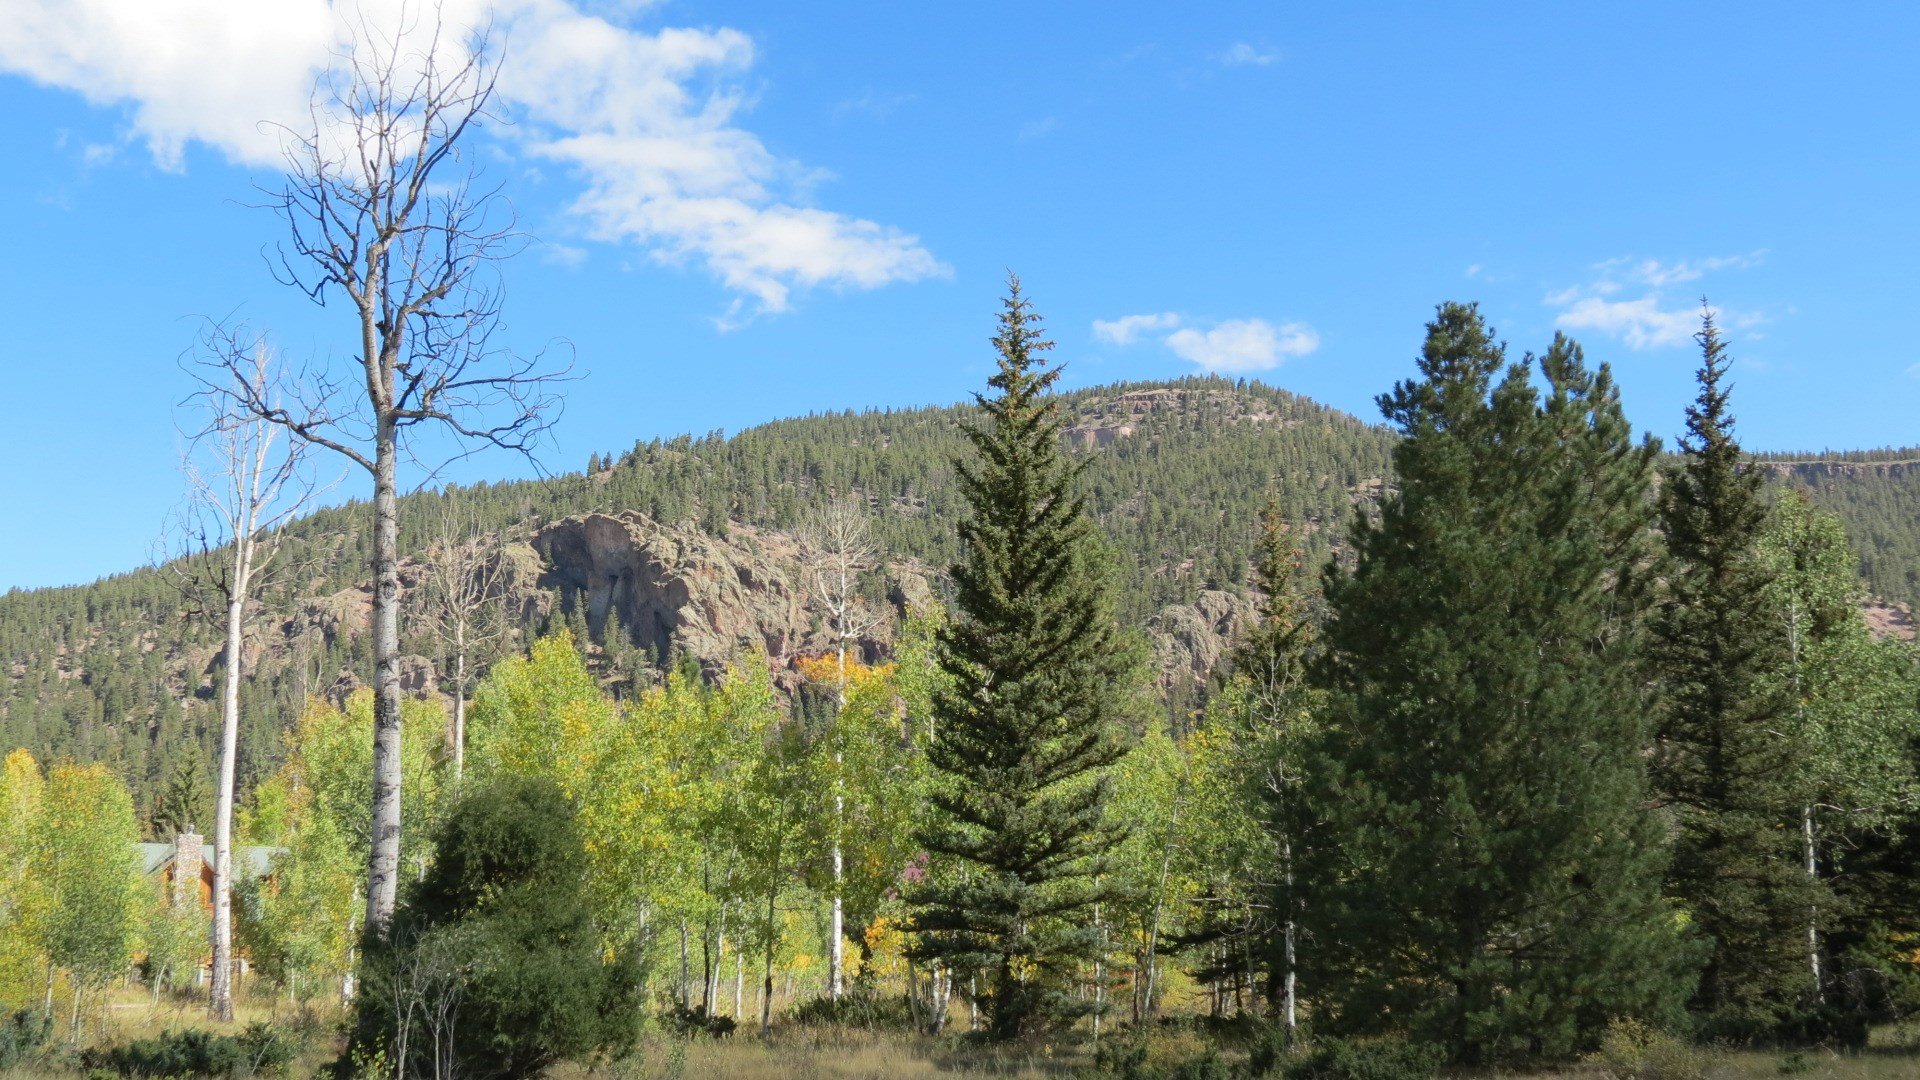 Fly Fish Colorado on this 1ac Building Lot in the Mountains!